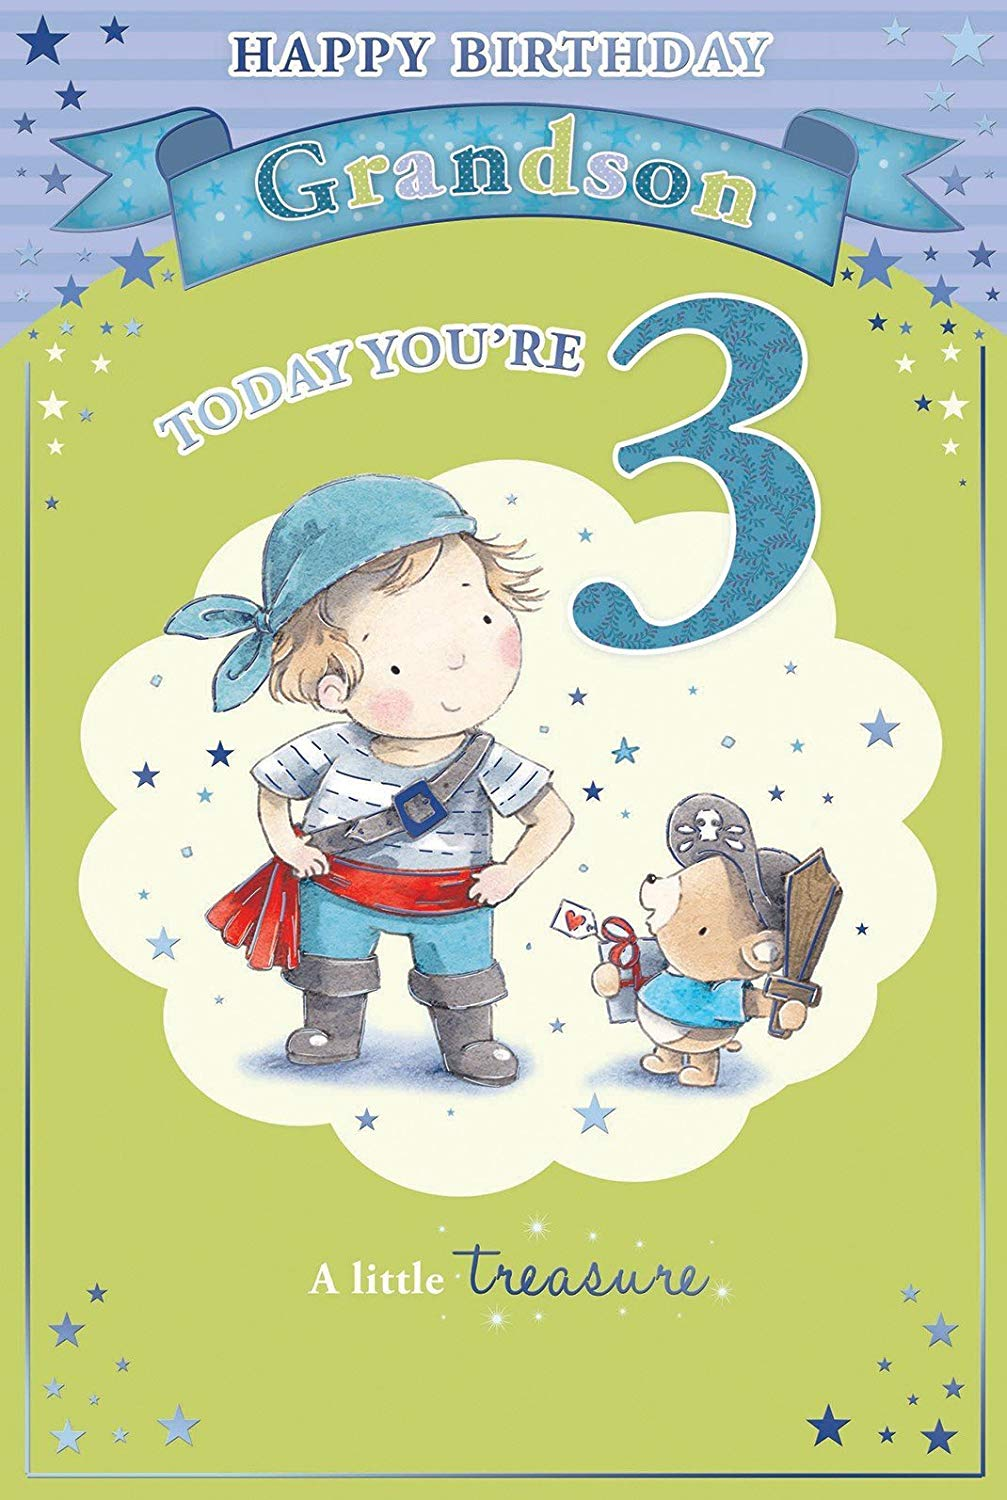 3rd birthday card verses ; 71Lj6%252BdrCXL